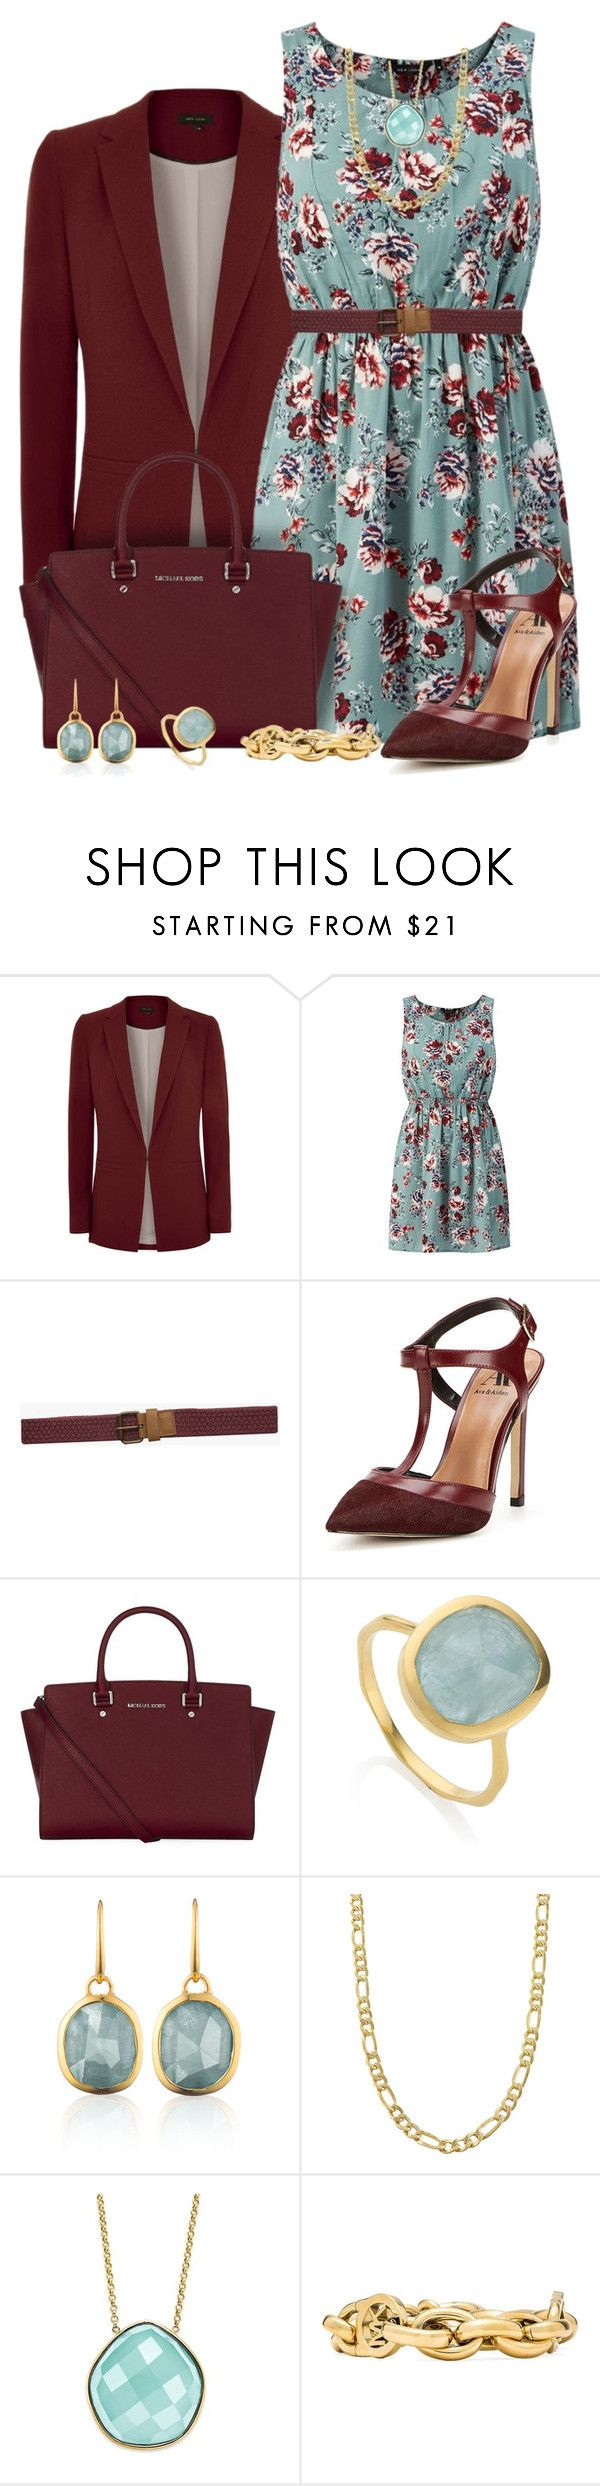 Mint Green and Burgandy Floral Dress Outfit by helenehrenhofer on Polyvore featuring Ava & Aiden, MICHAEL Michael Kors, Michael Kors, Monica Vinader, Fremada and Mr Simple